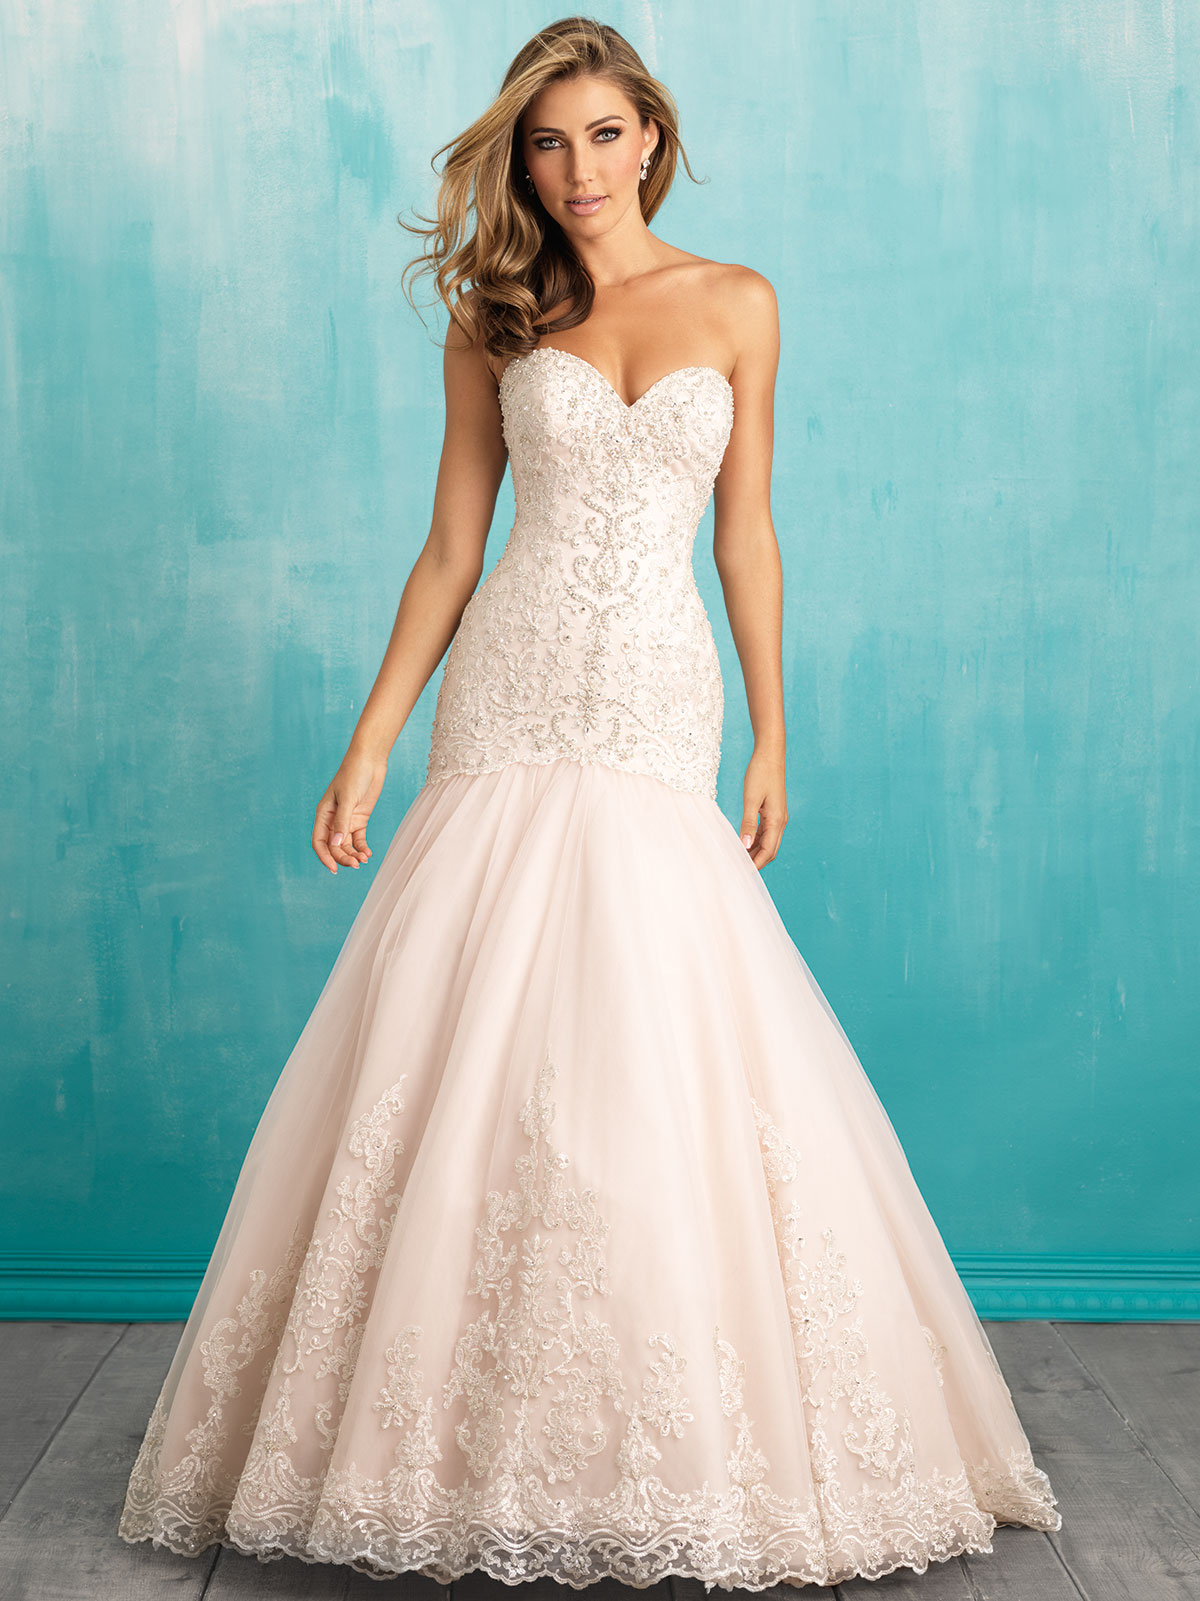 Allure 9325 Sweetheart Fit And Flare Bridal Dress|DimitraDesigns.com